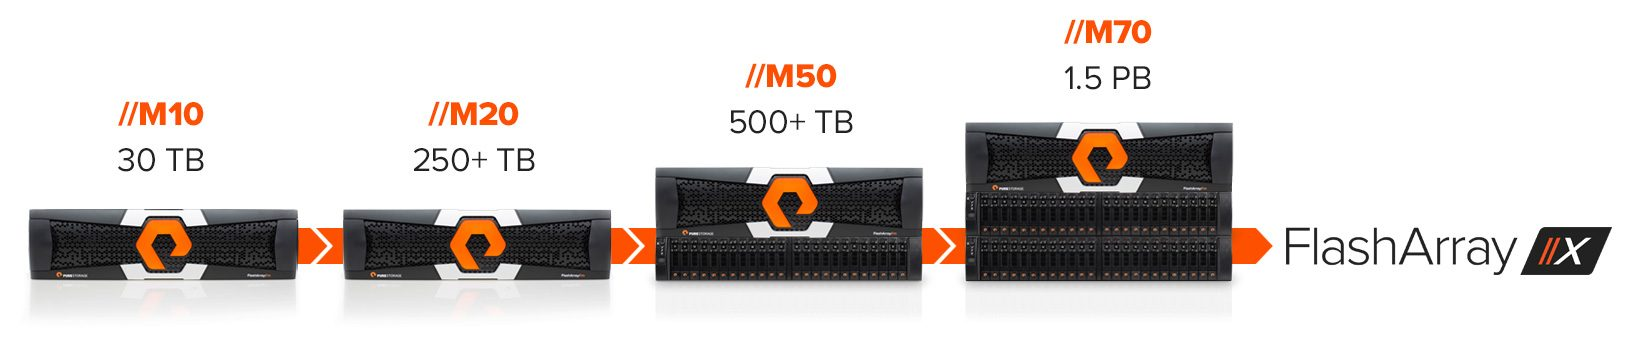 All-Flash Array Solution For Every IT Need